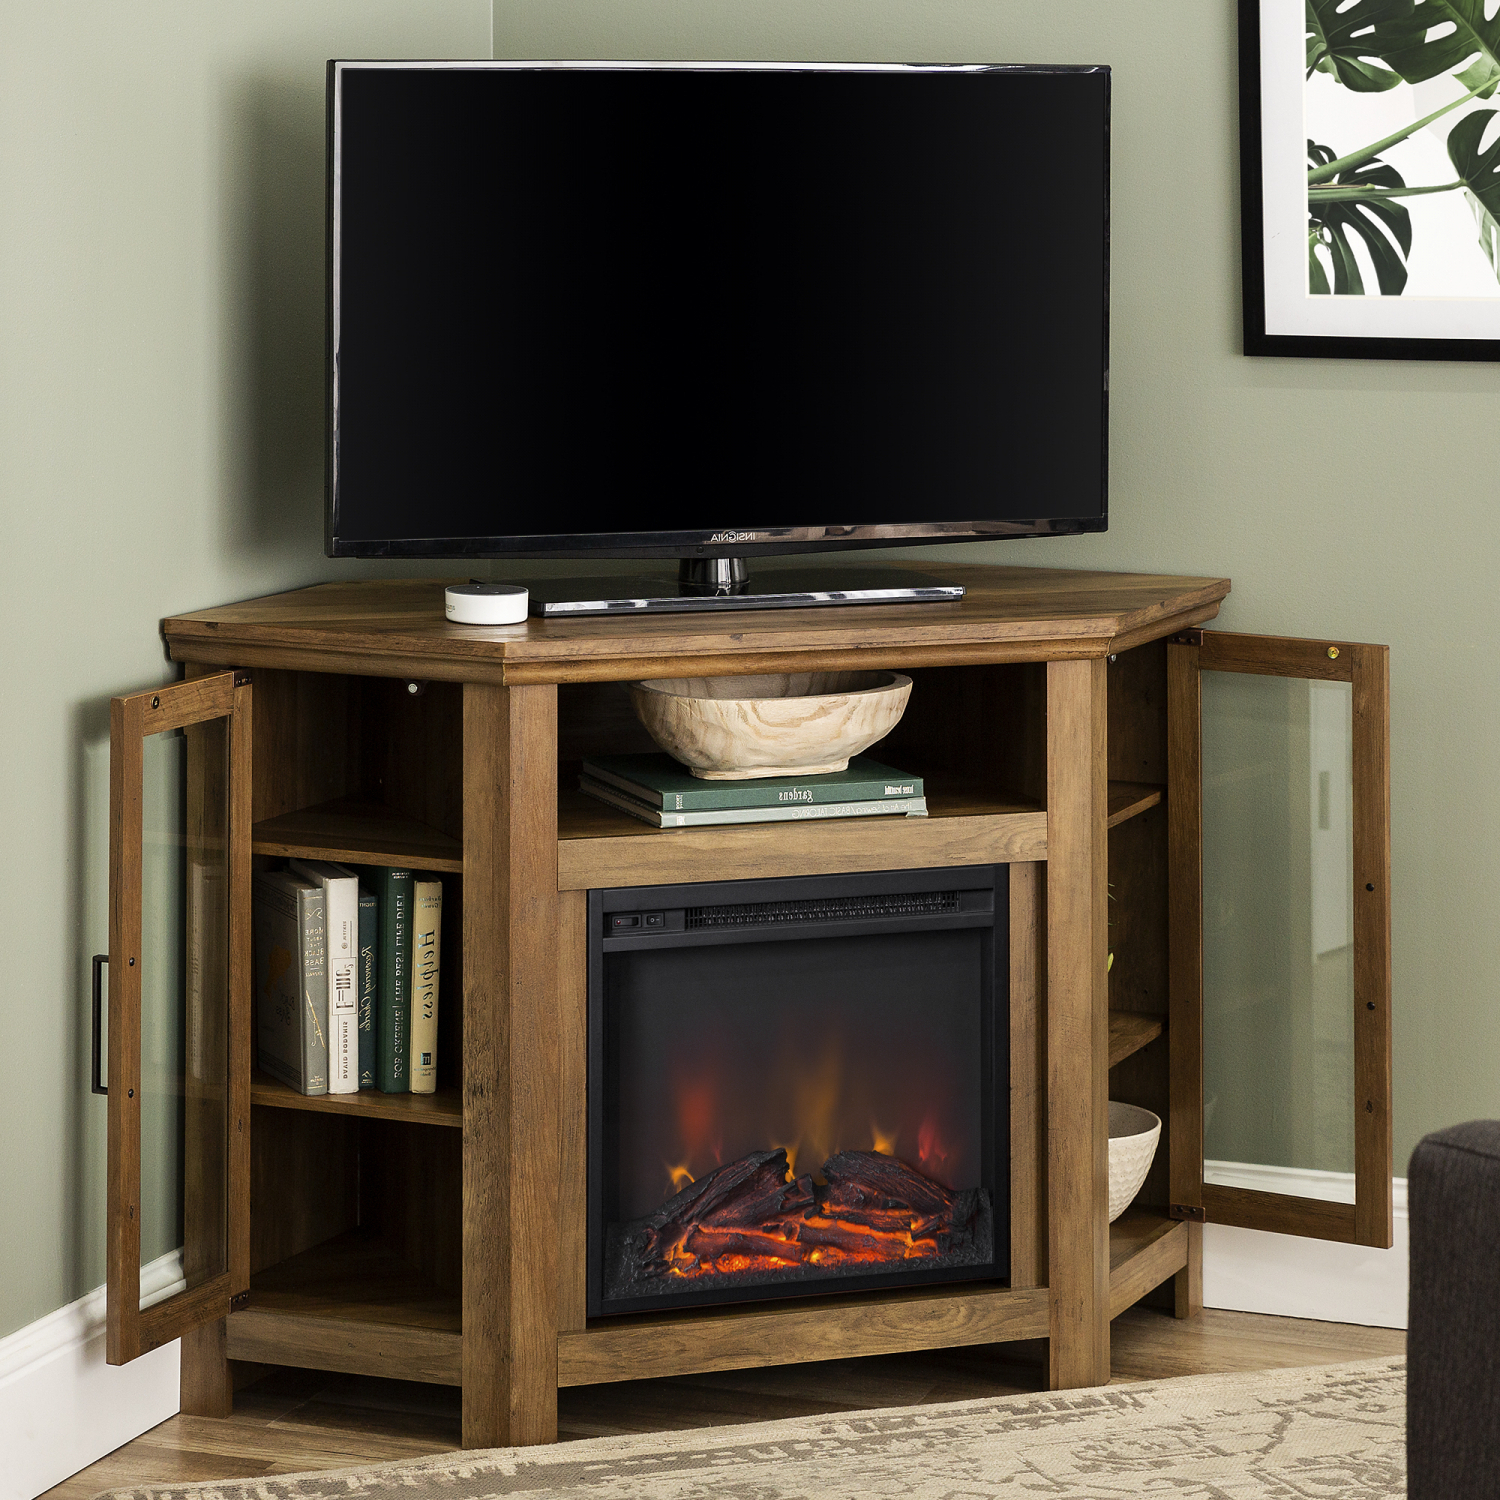 """Modern Corner Electric Fireplace 55"""" Wooden Tv Stand With Current Rustic Grey Tv Stand Media Console Stands For Living Room Bedroom (View 6 of 10)"""